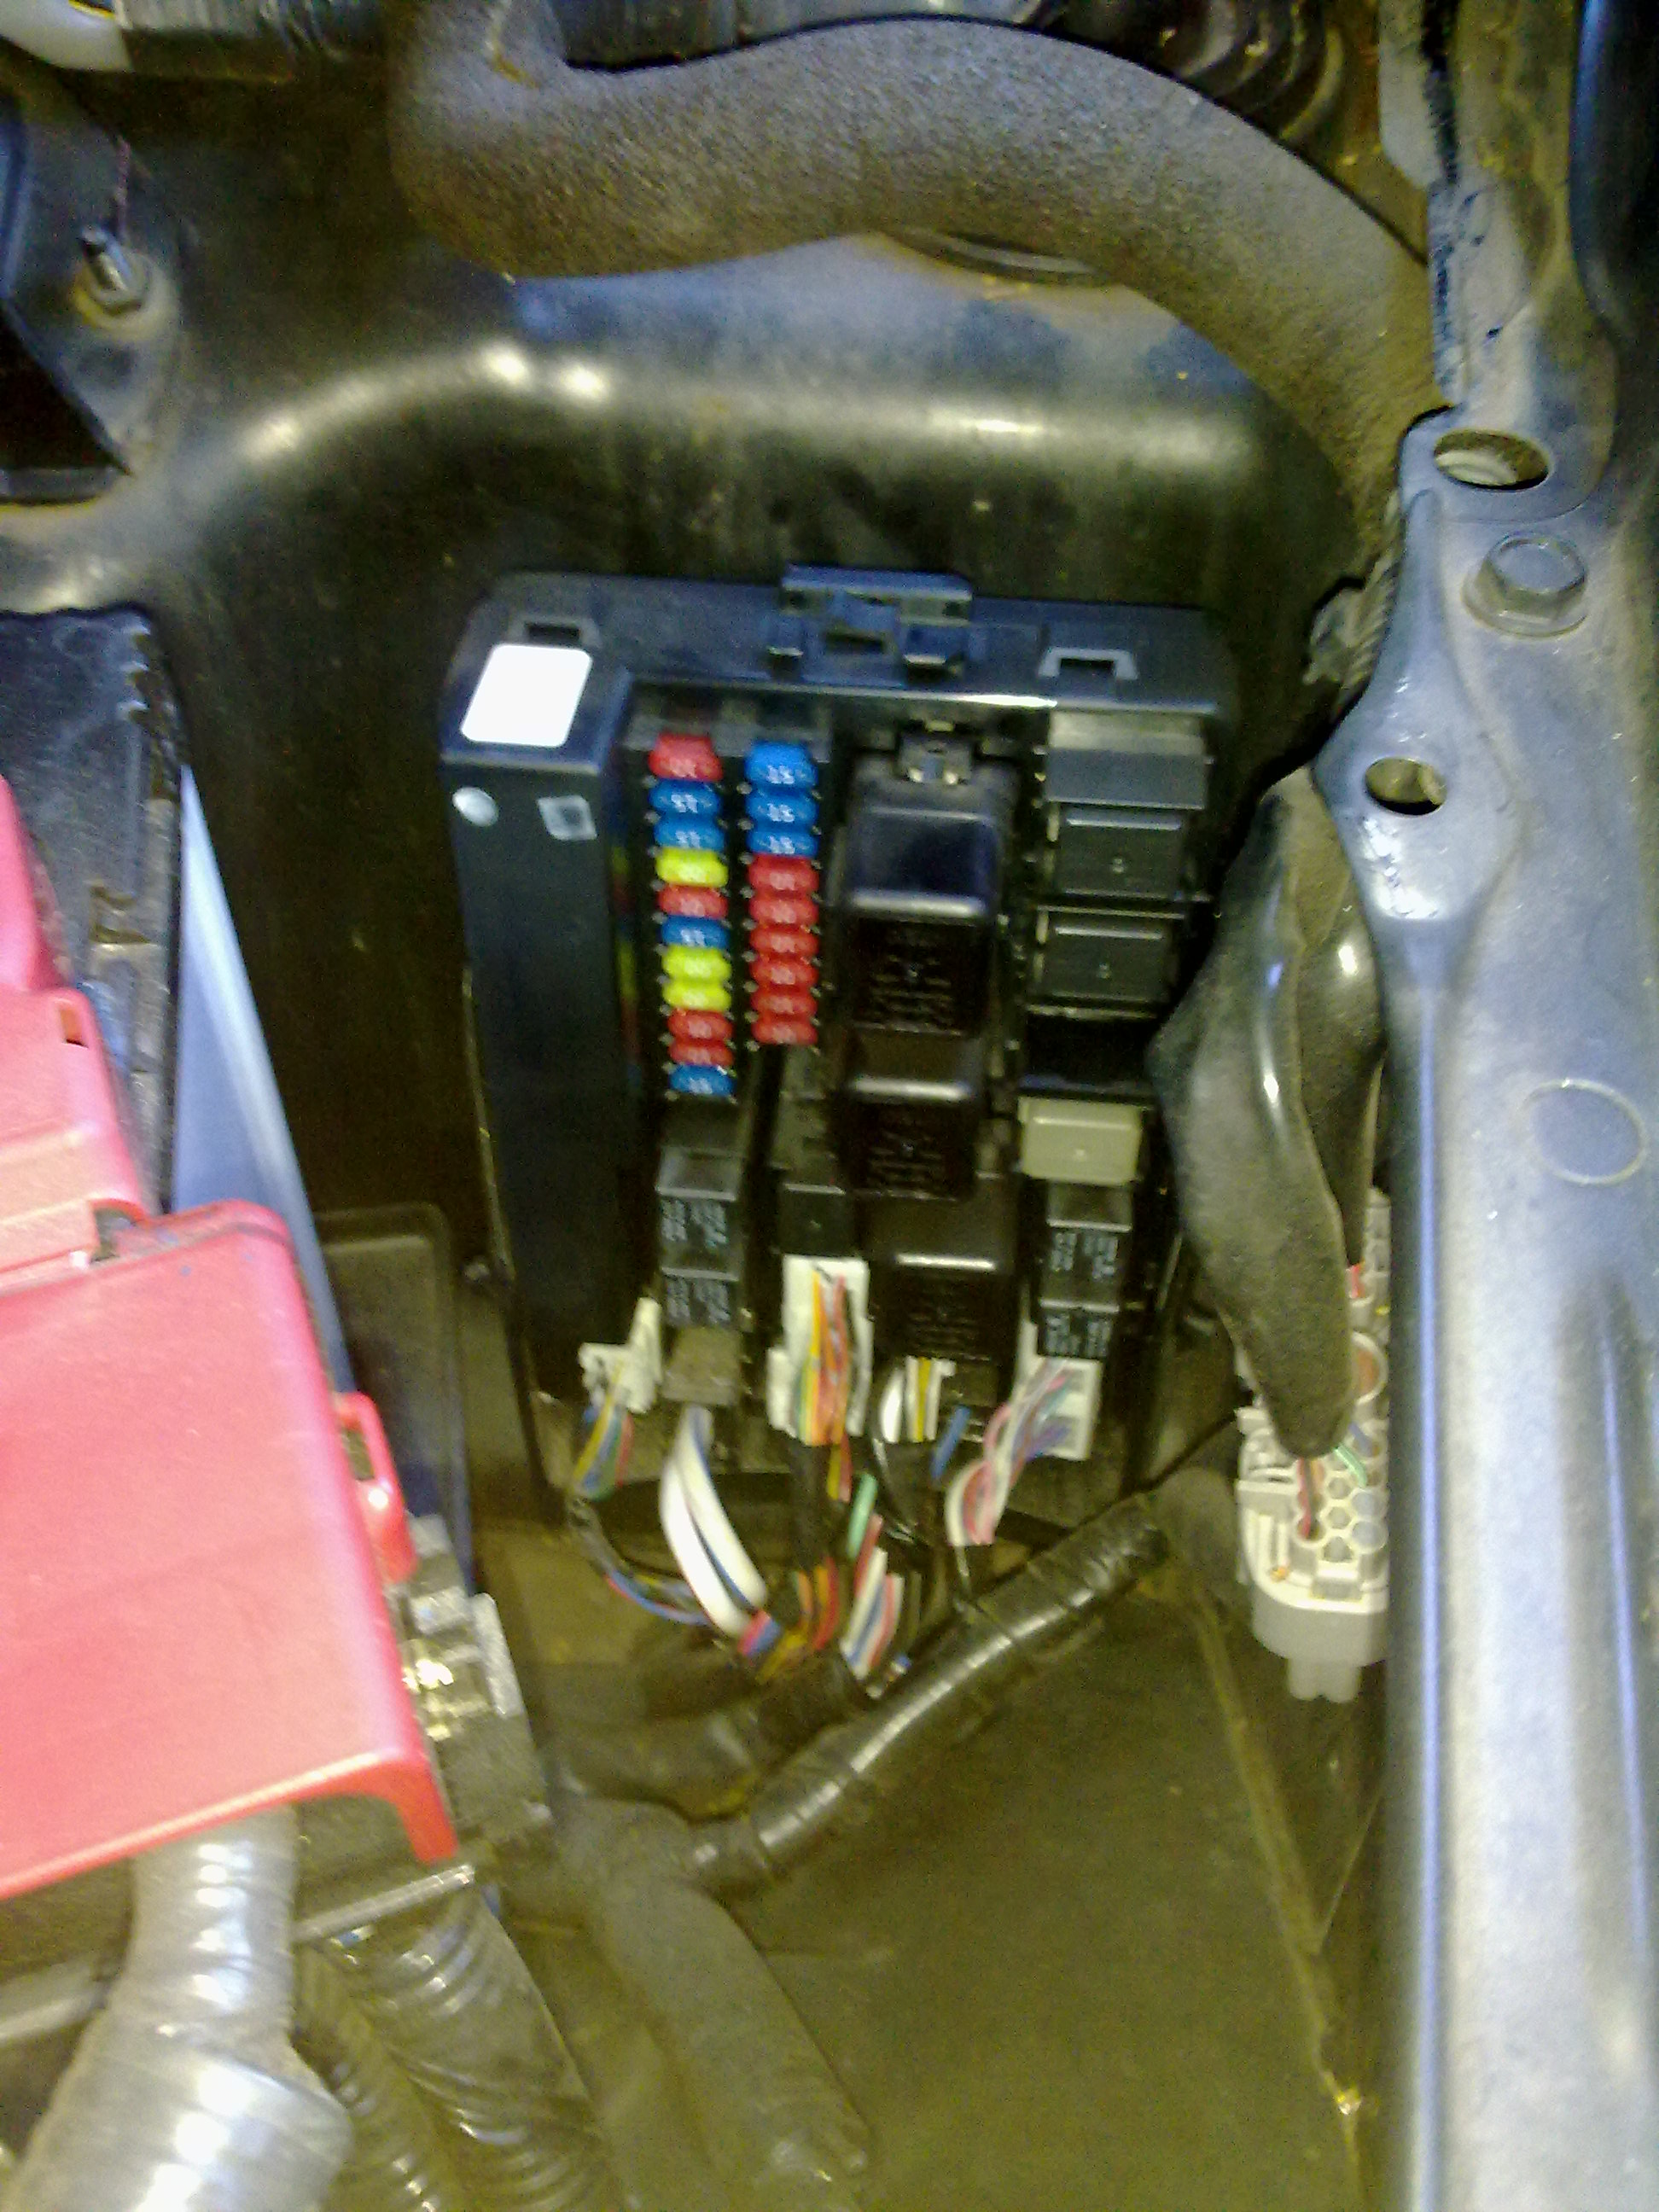 V35 Coupe Fuse Box With Pics Vq Series V36 Infiniti Sau G35 Amplifier Wiring Diagram Post 71983 1285378212 Thumb